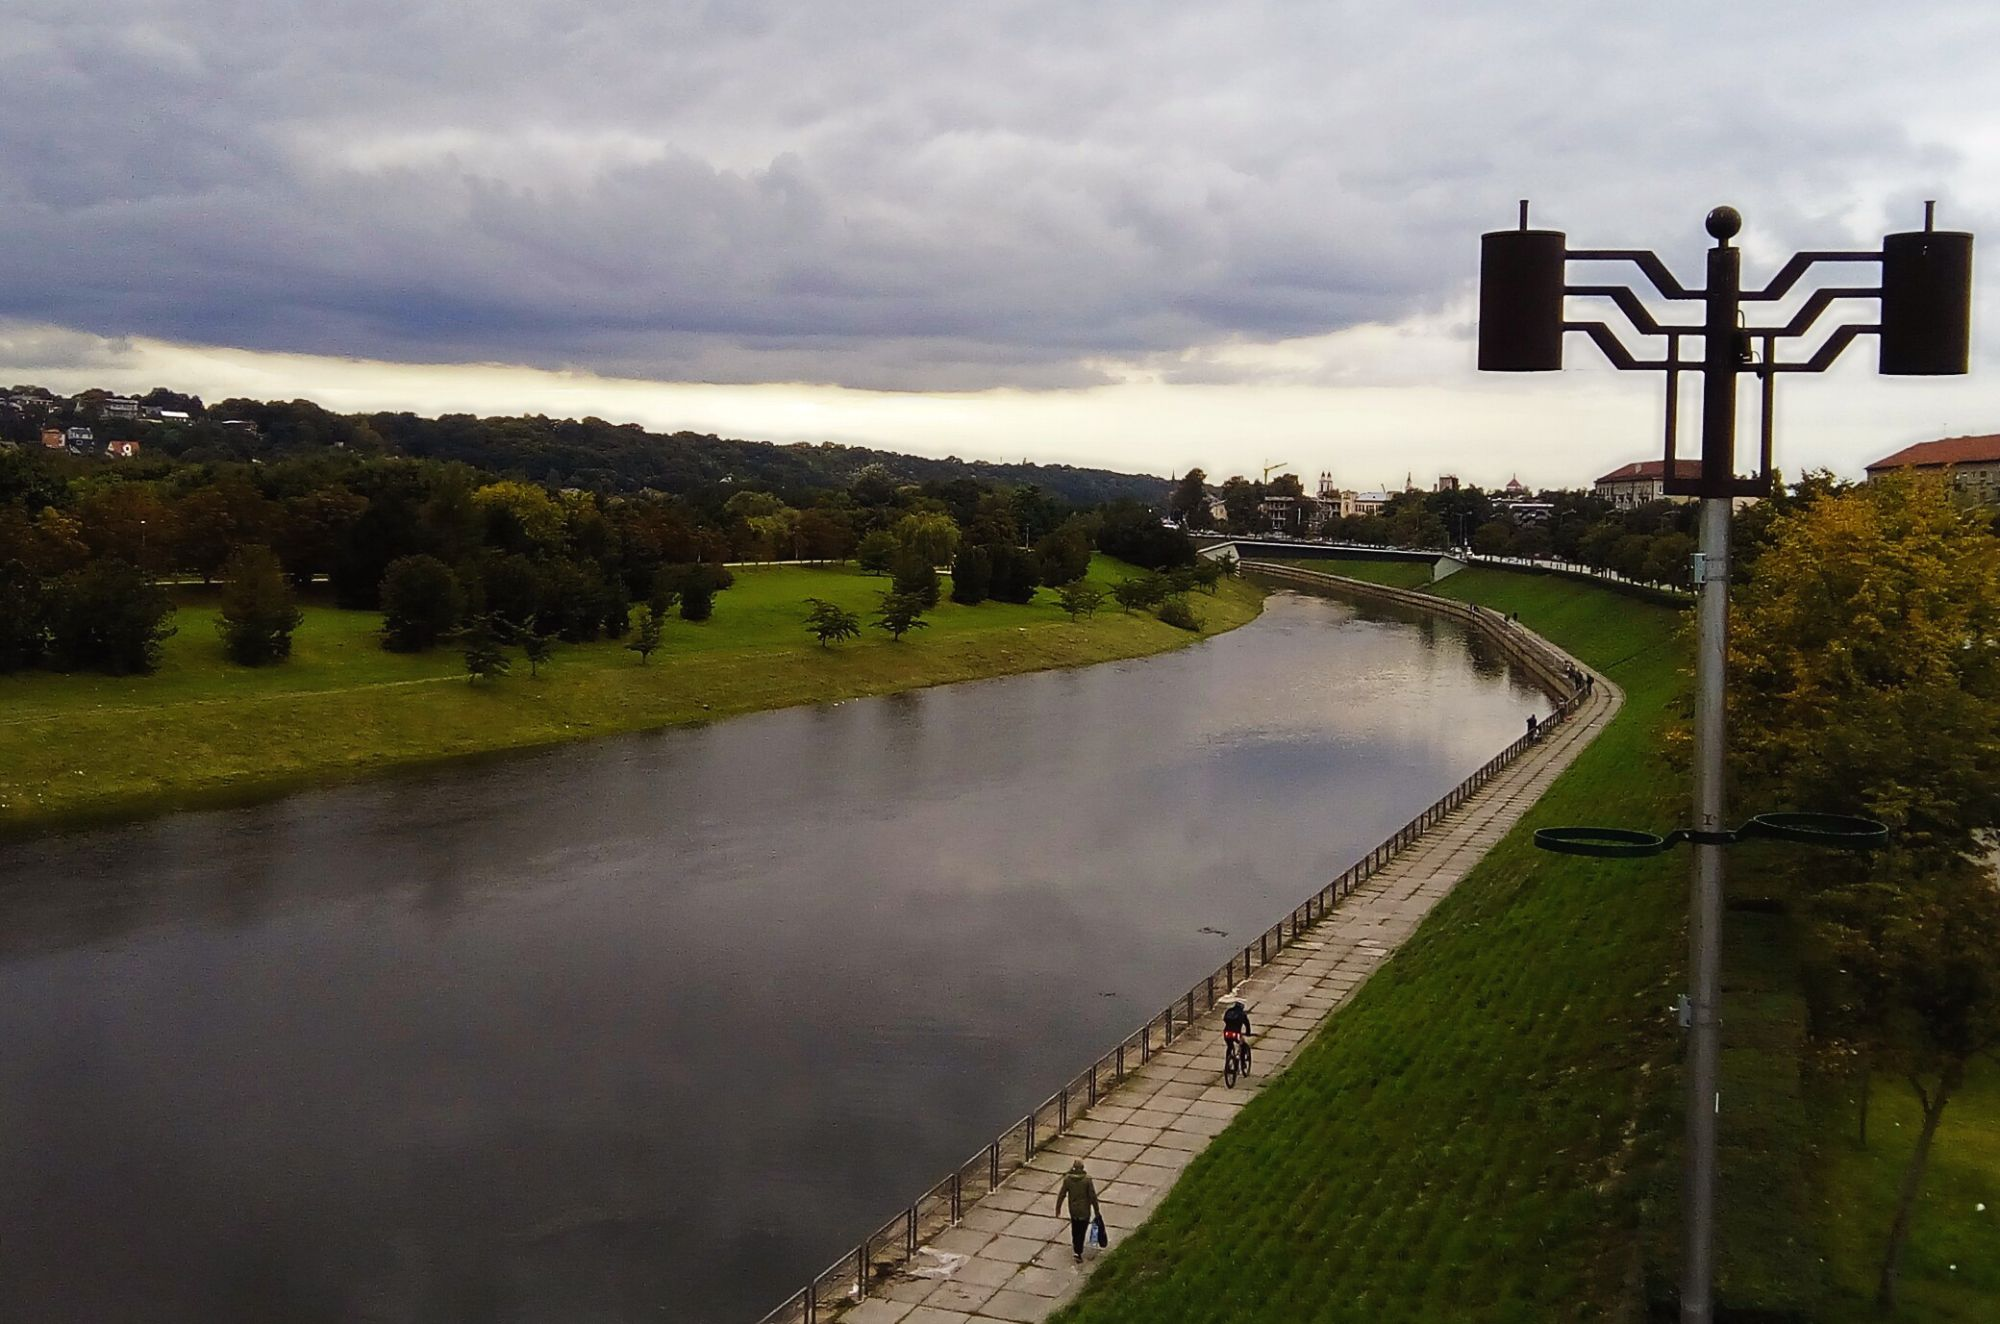 Kaunas is located at the river Neris.